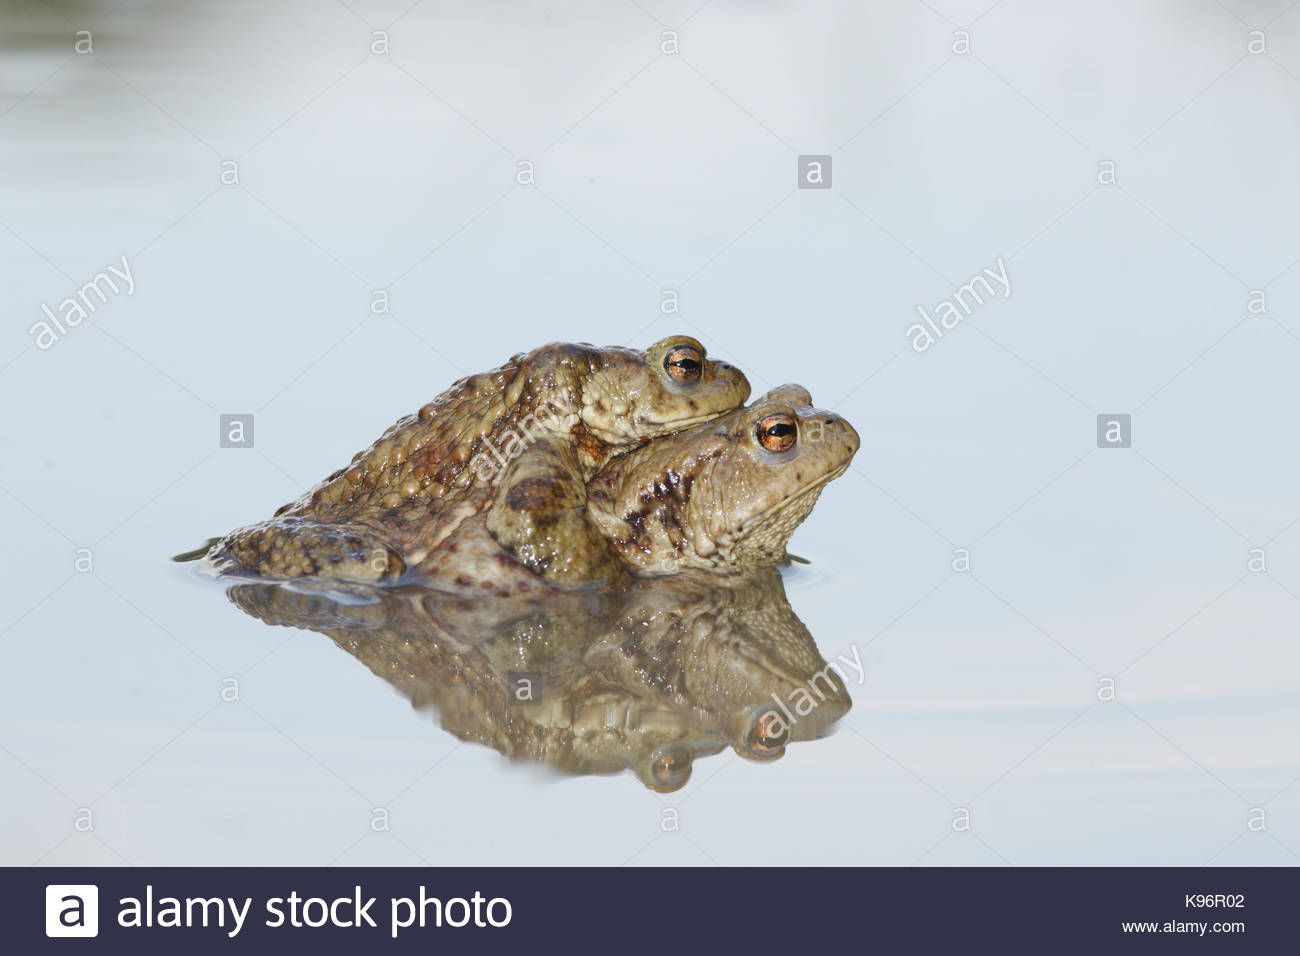 Common toads, Bufo bufo, in mating position called amplexus. - Stock Image